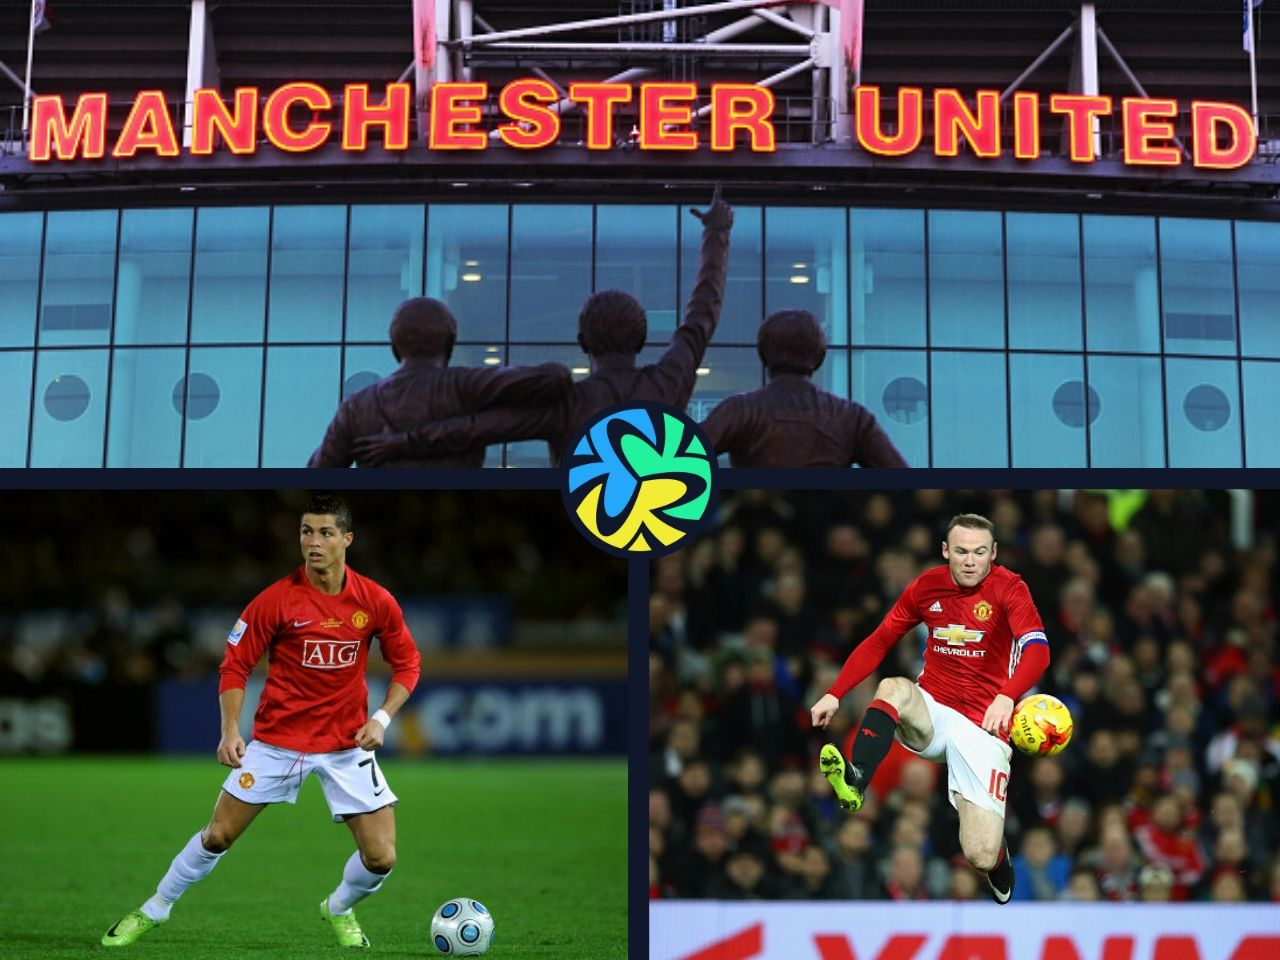 Top 10 Manchester United players of the 21st century